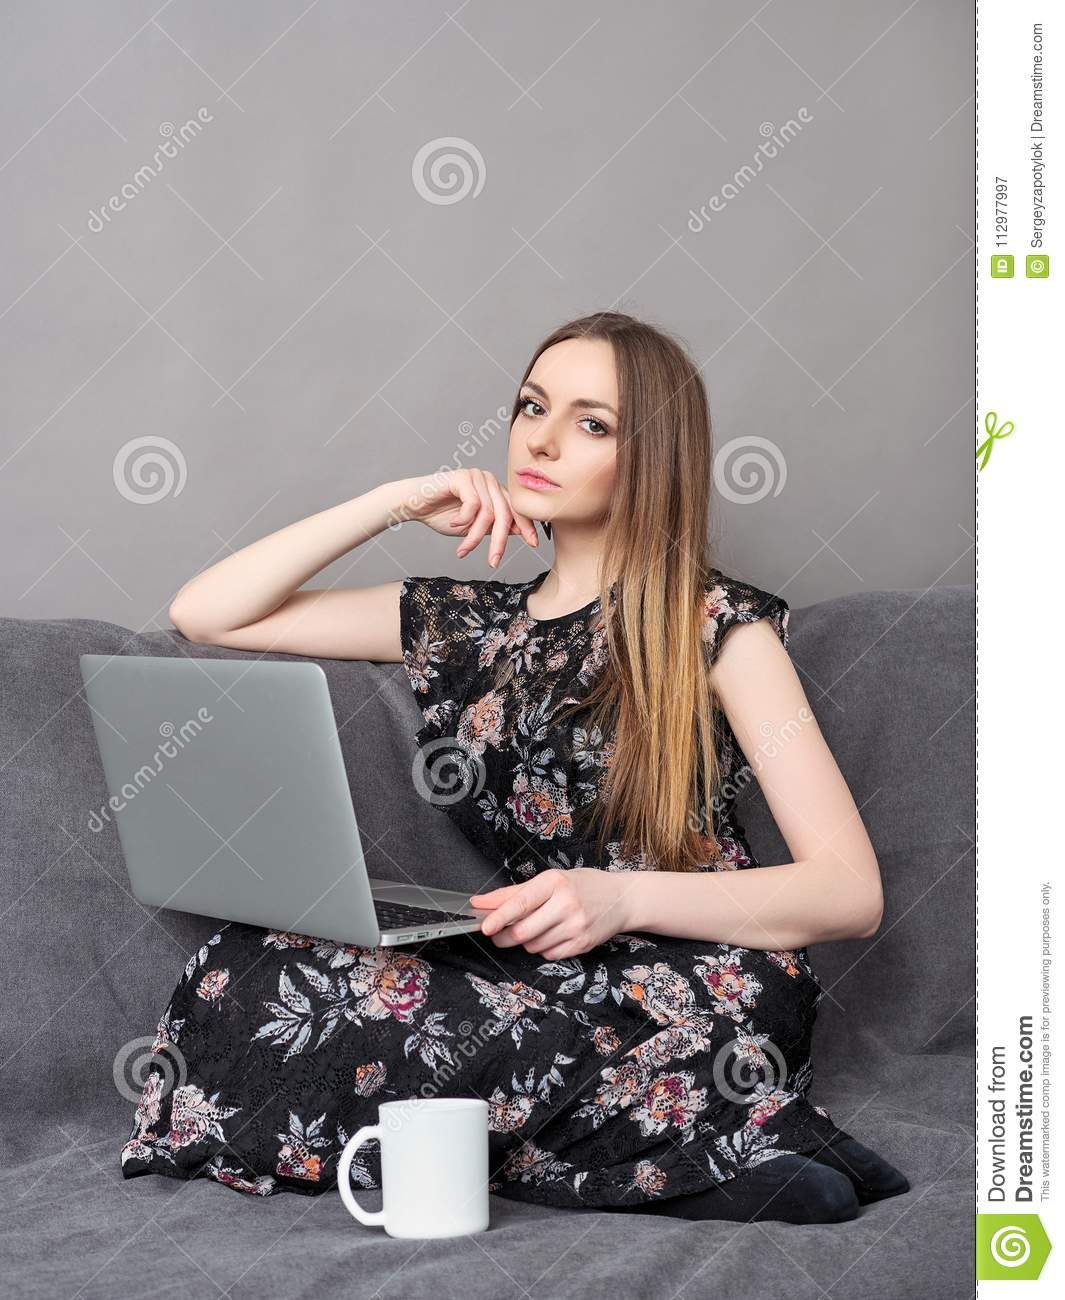 Happy young adorable woman in long dress sitting on sofa with laptop and big white mug at home